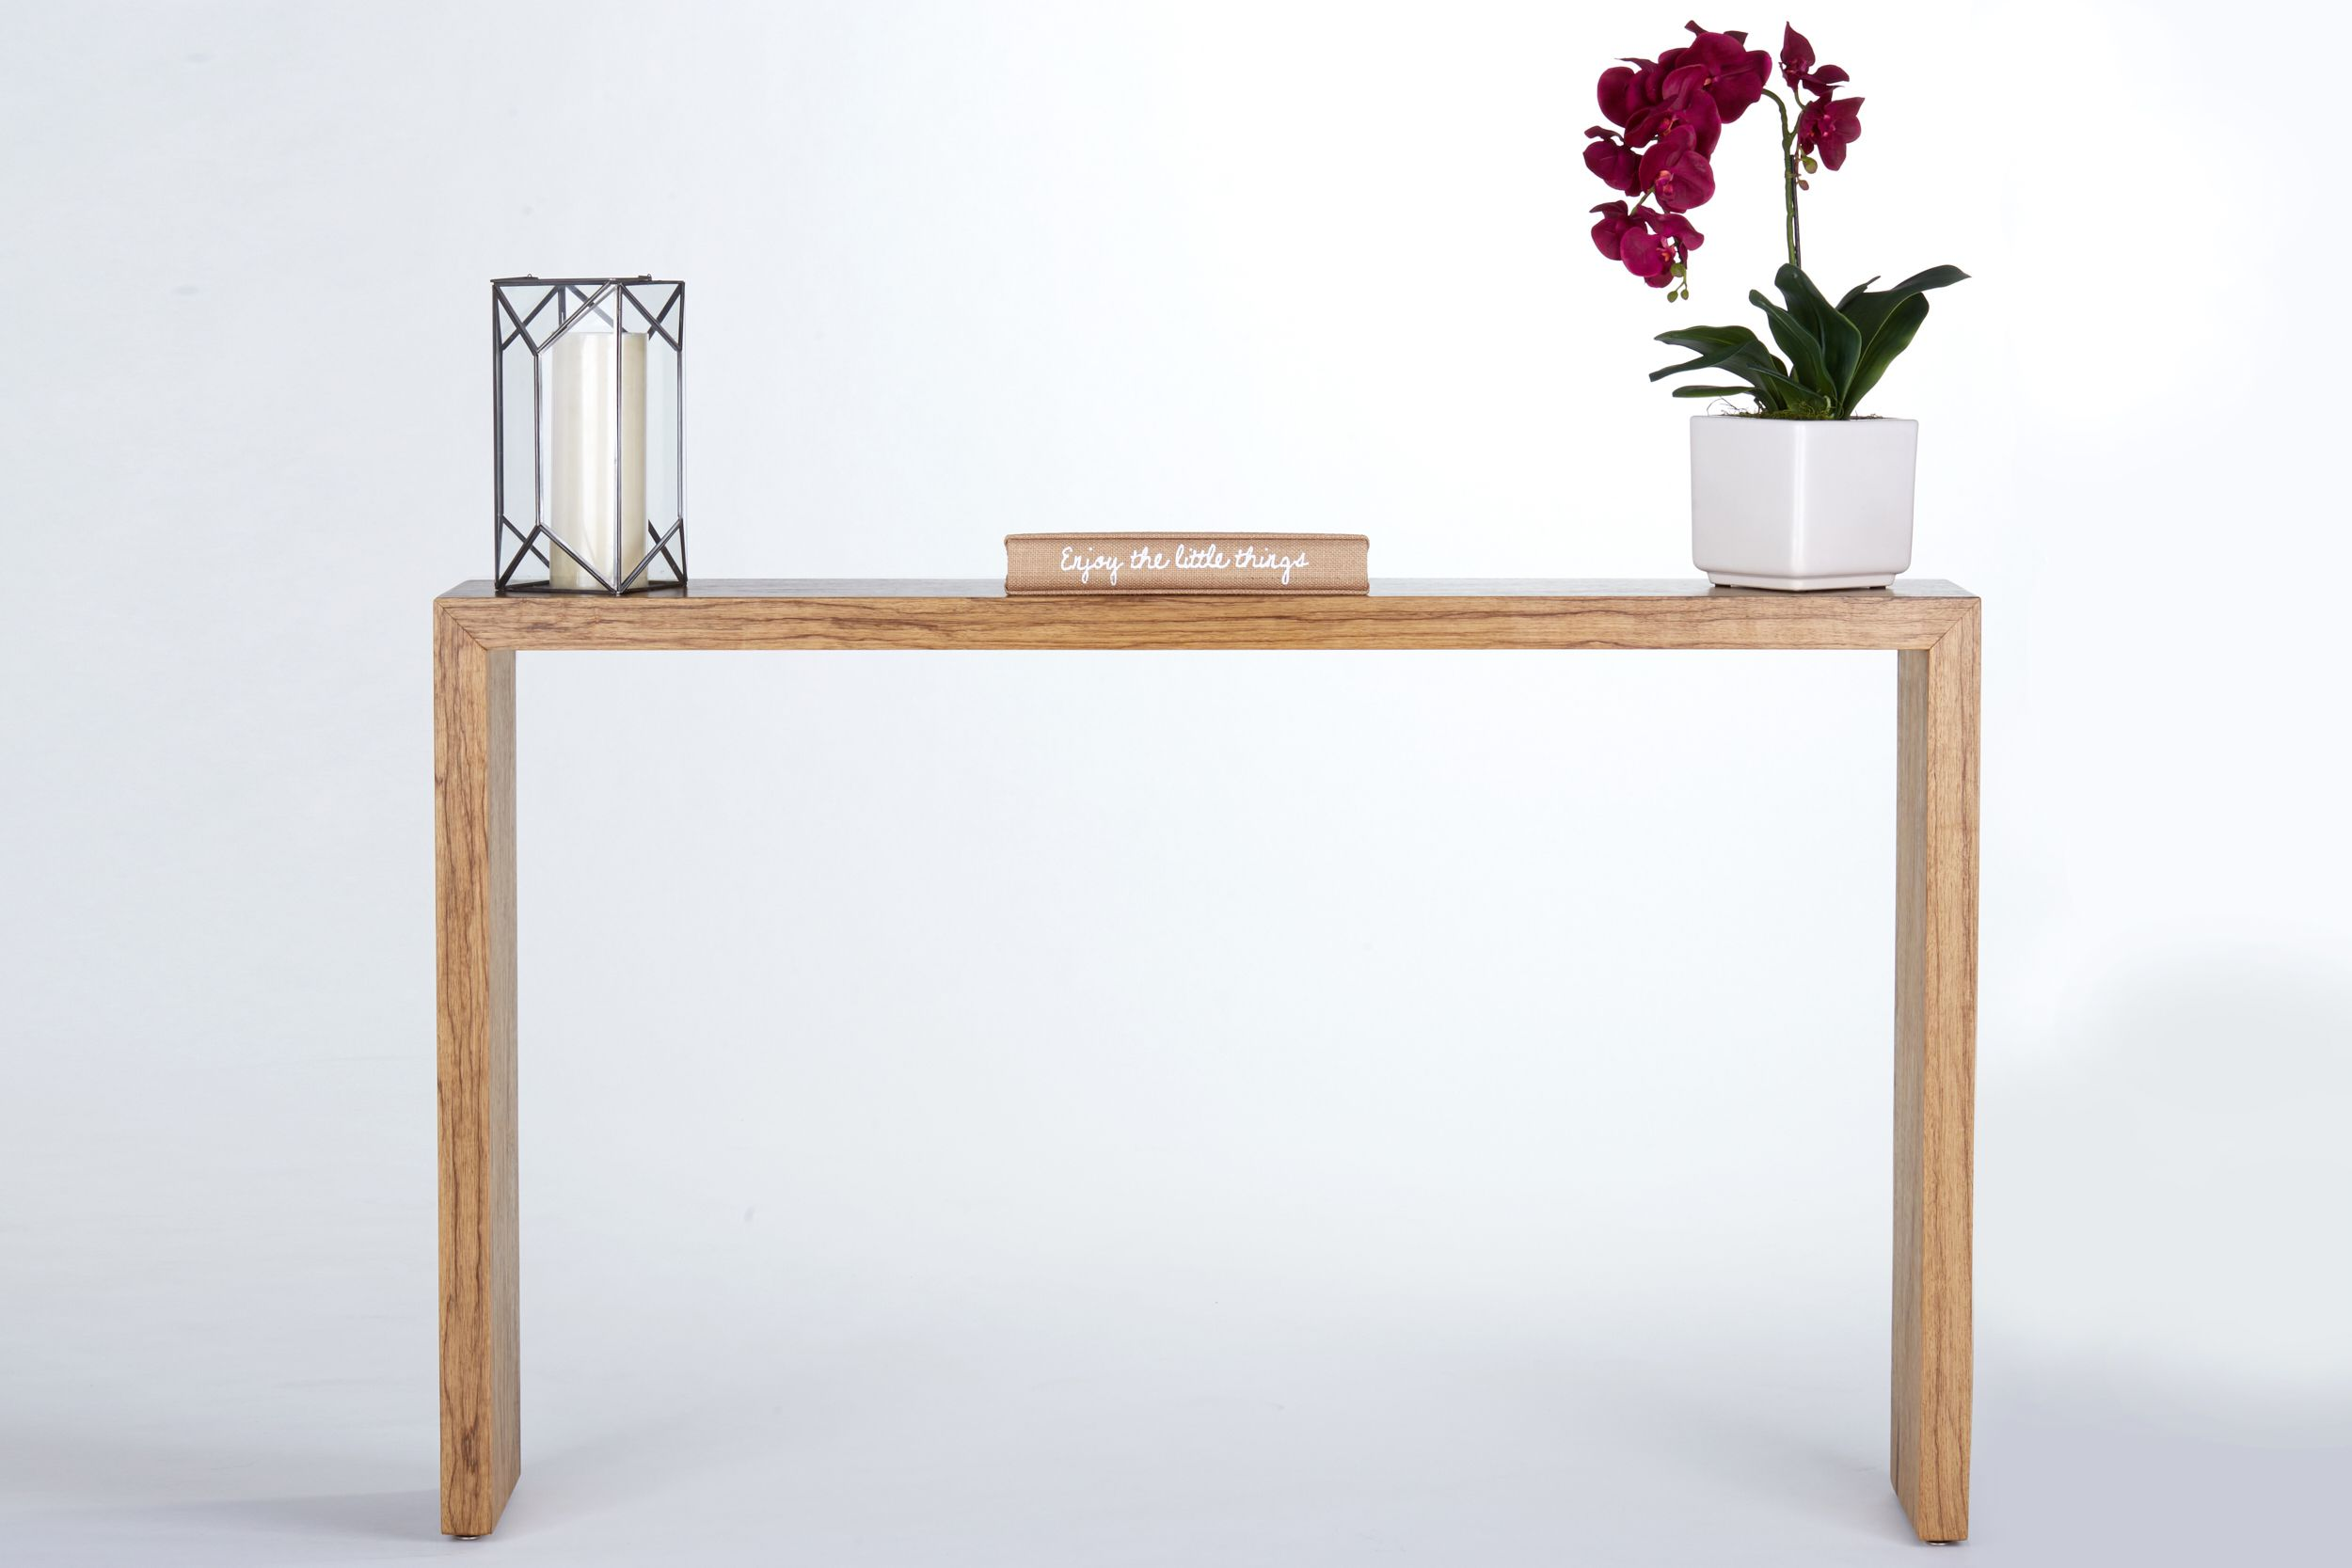 Hand crafted waterfall console table entryway table narrow custom made waterfall console table entryway table narrow console table black limba wood geotapseo Image collections